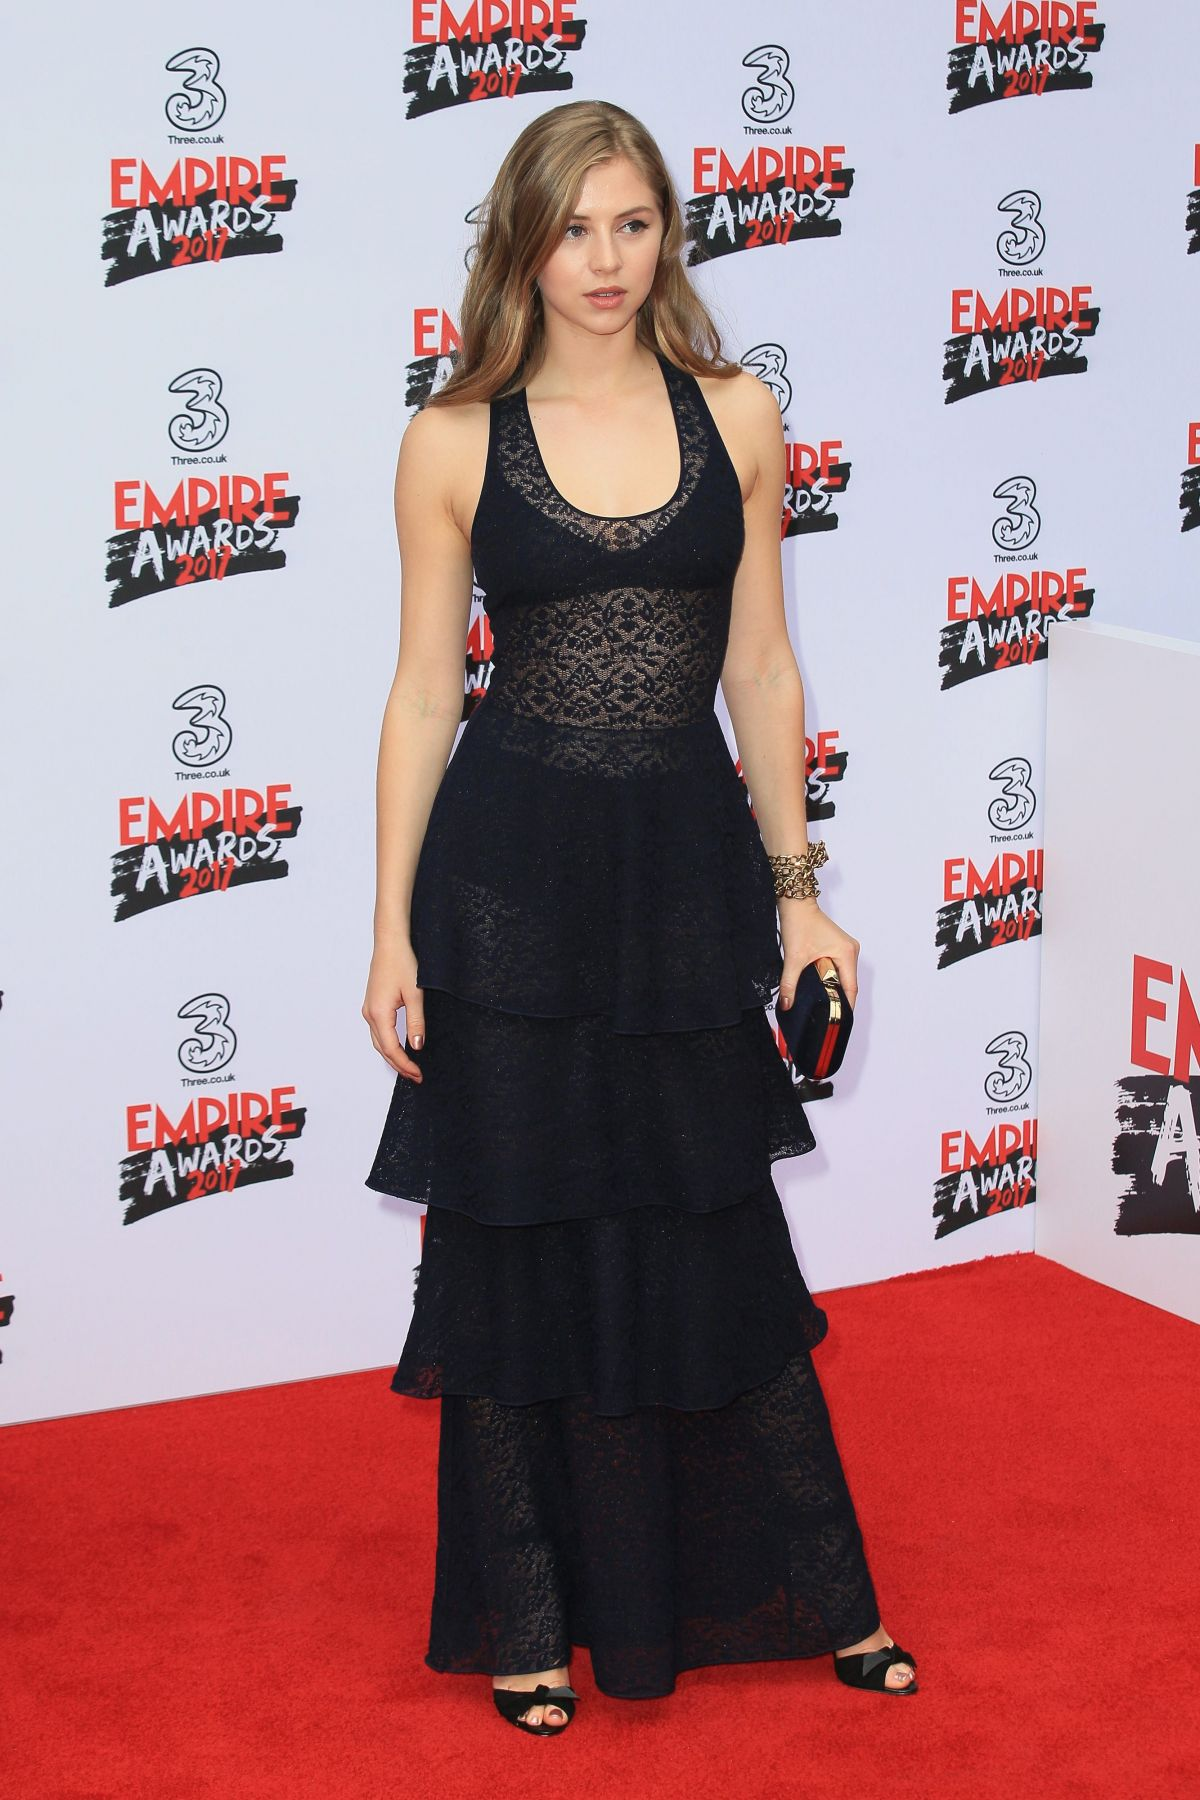 Hermione corfield at three empire awards in london